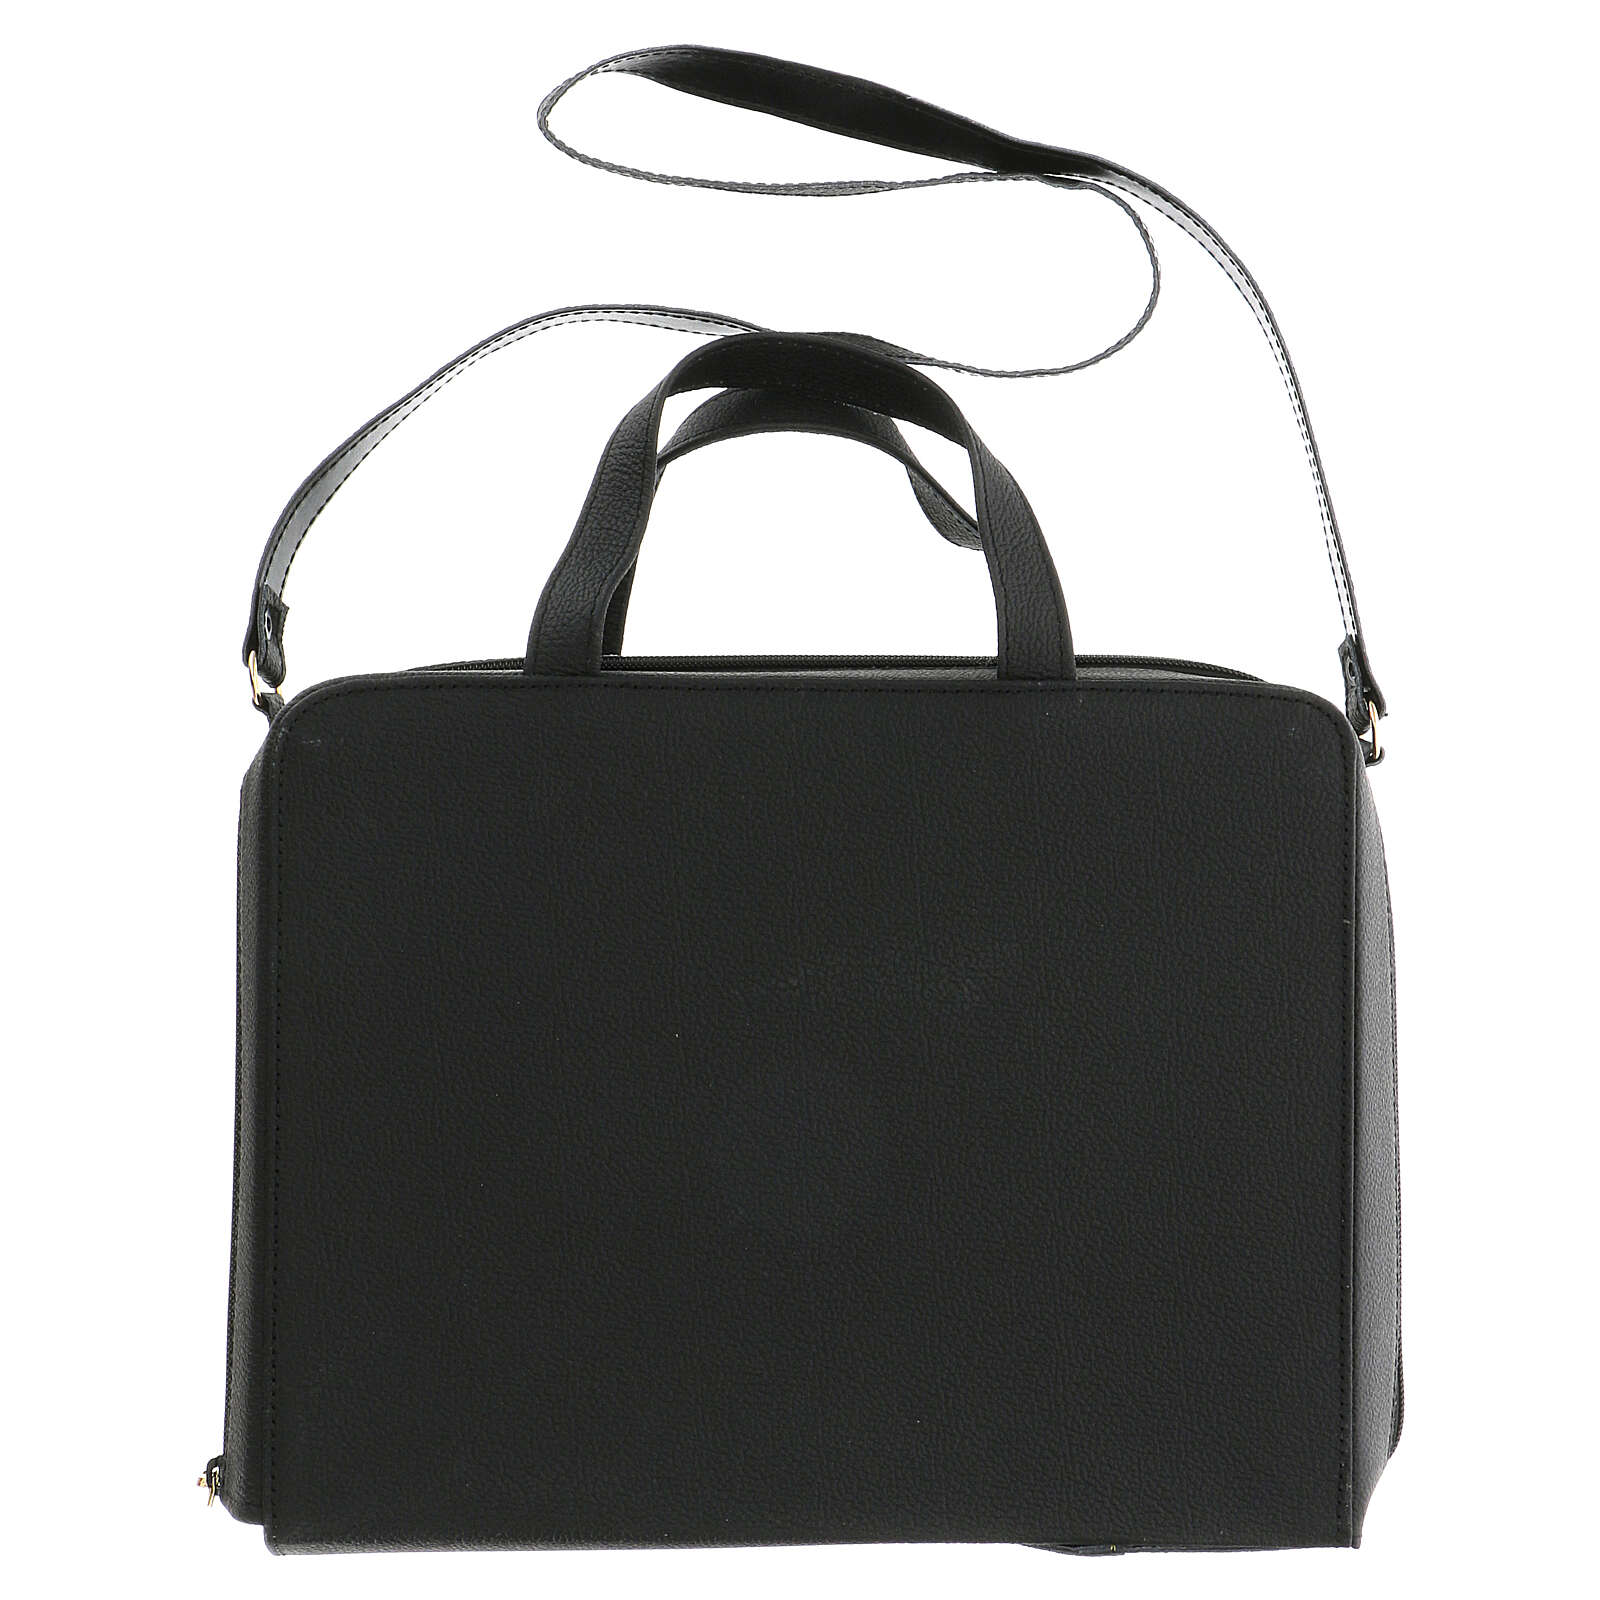 Handle leather bag with shoulder belt 3